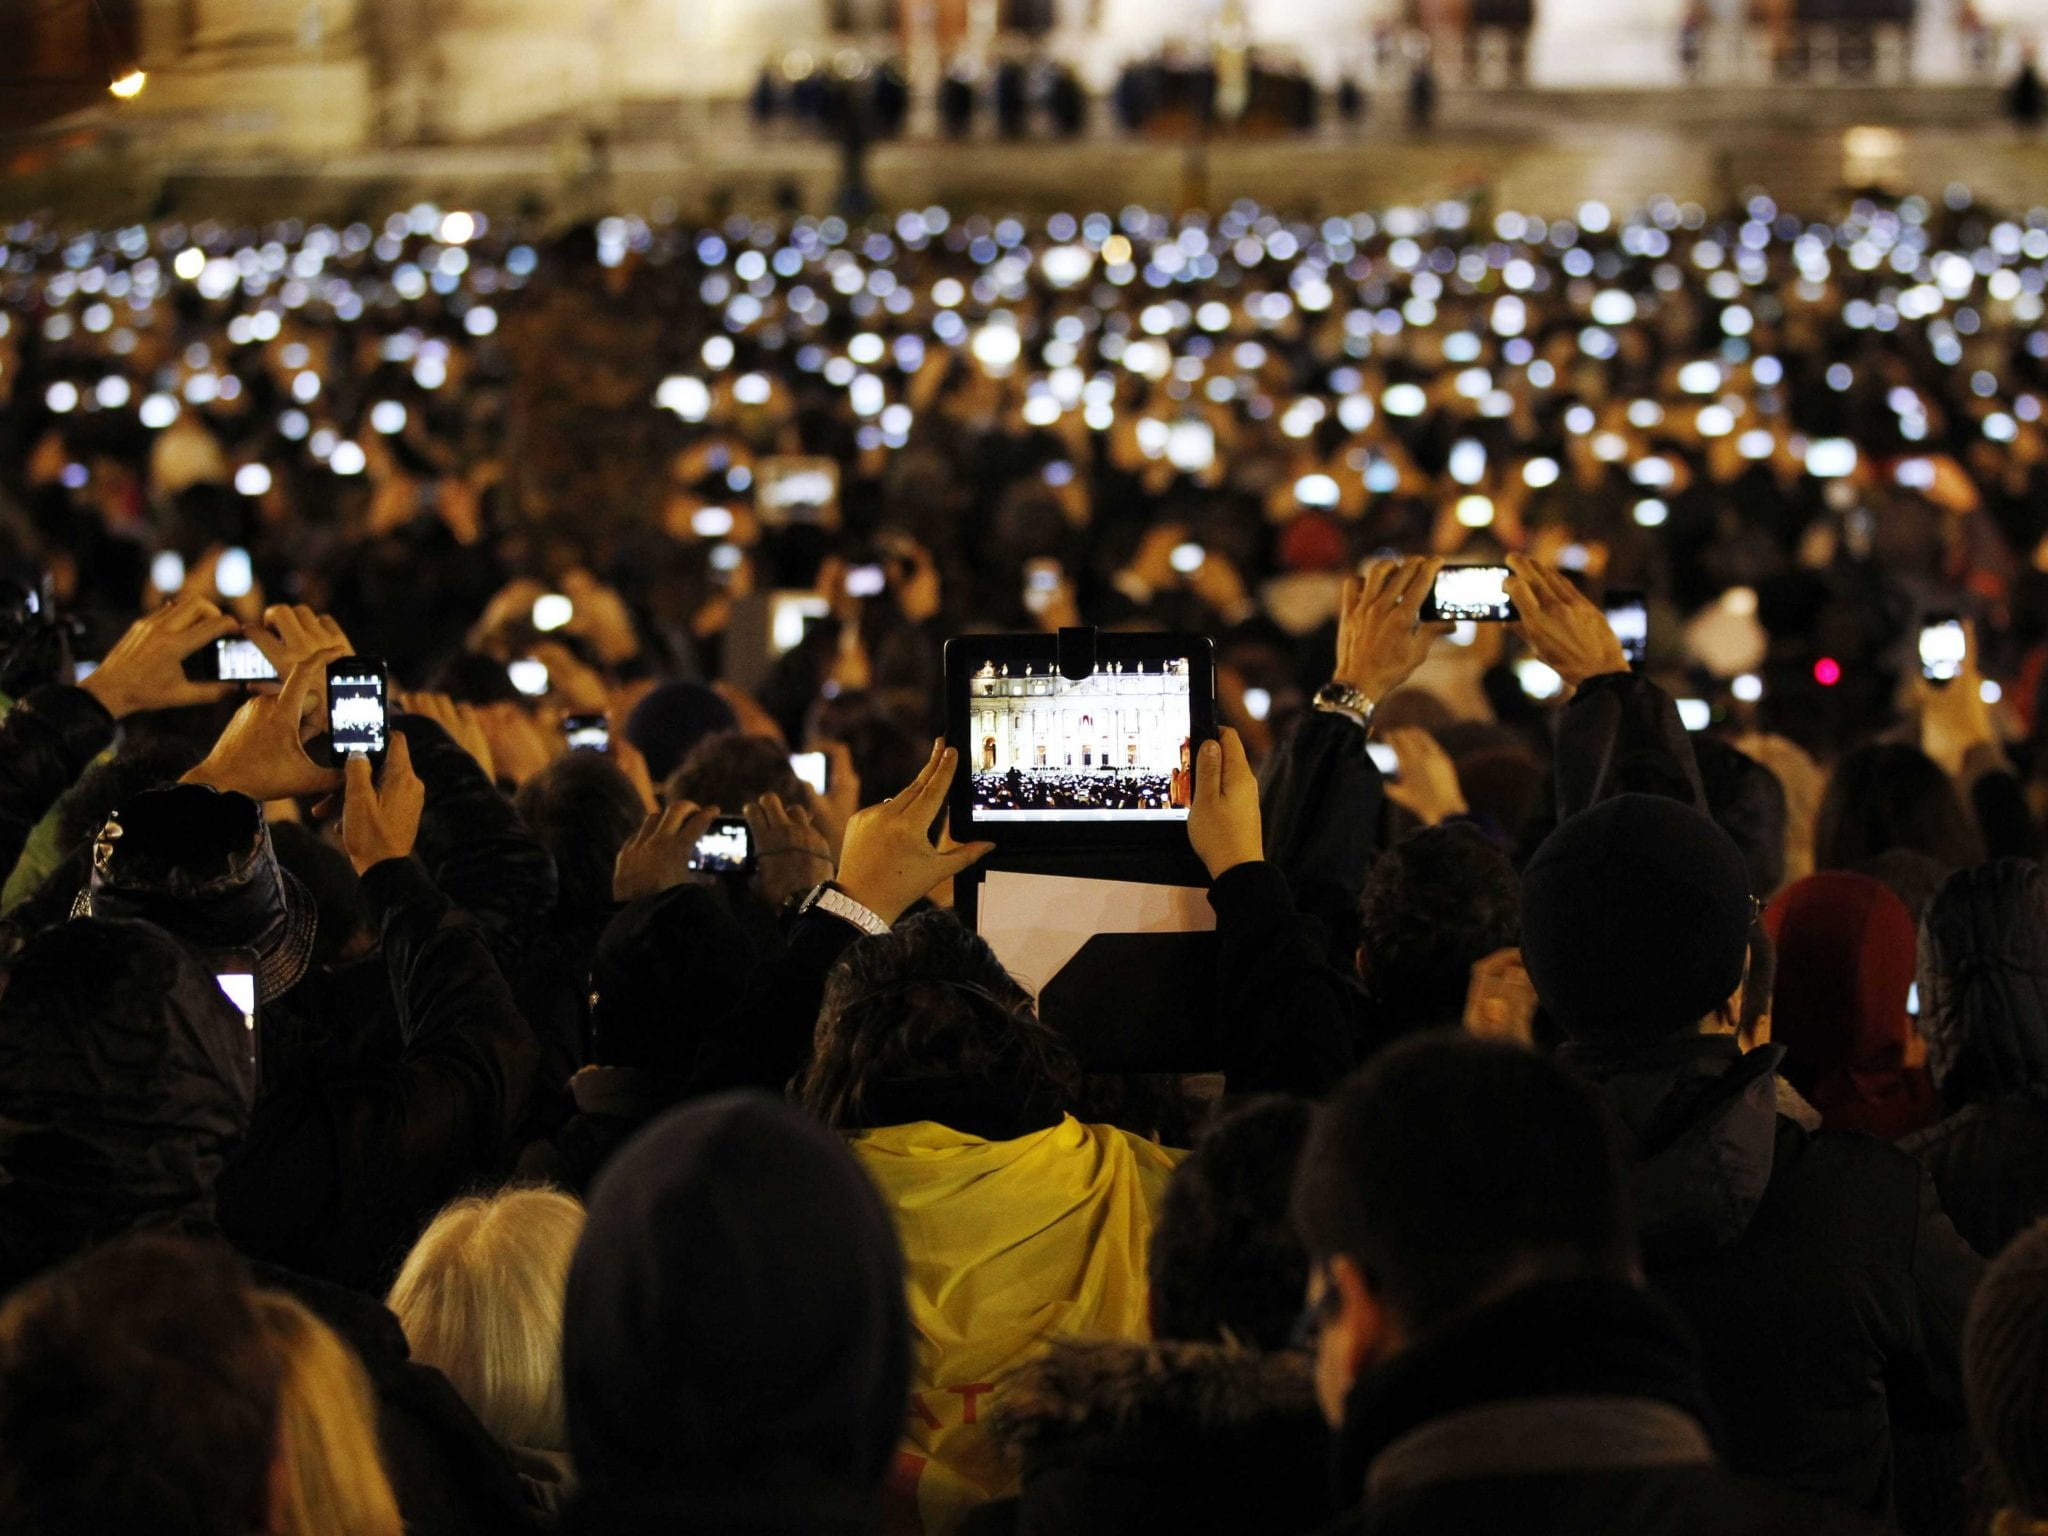 5 Ways Crowdsourcing Serves Our Governments